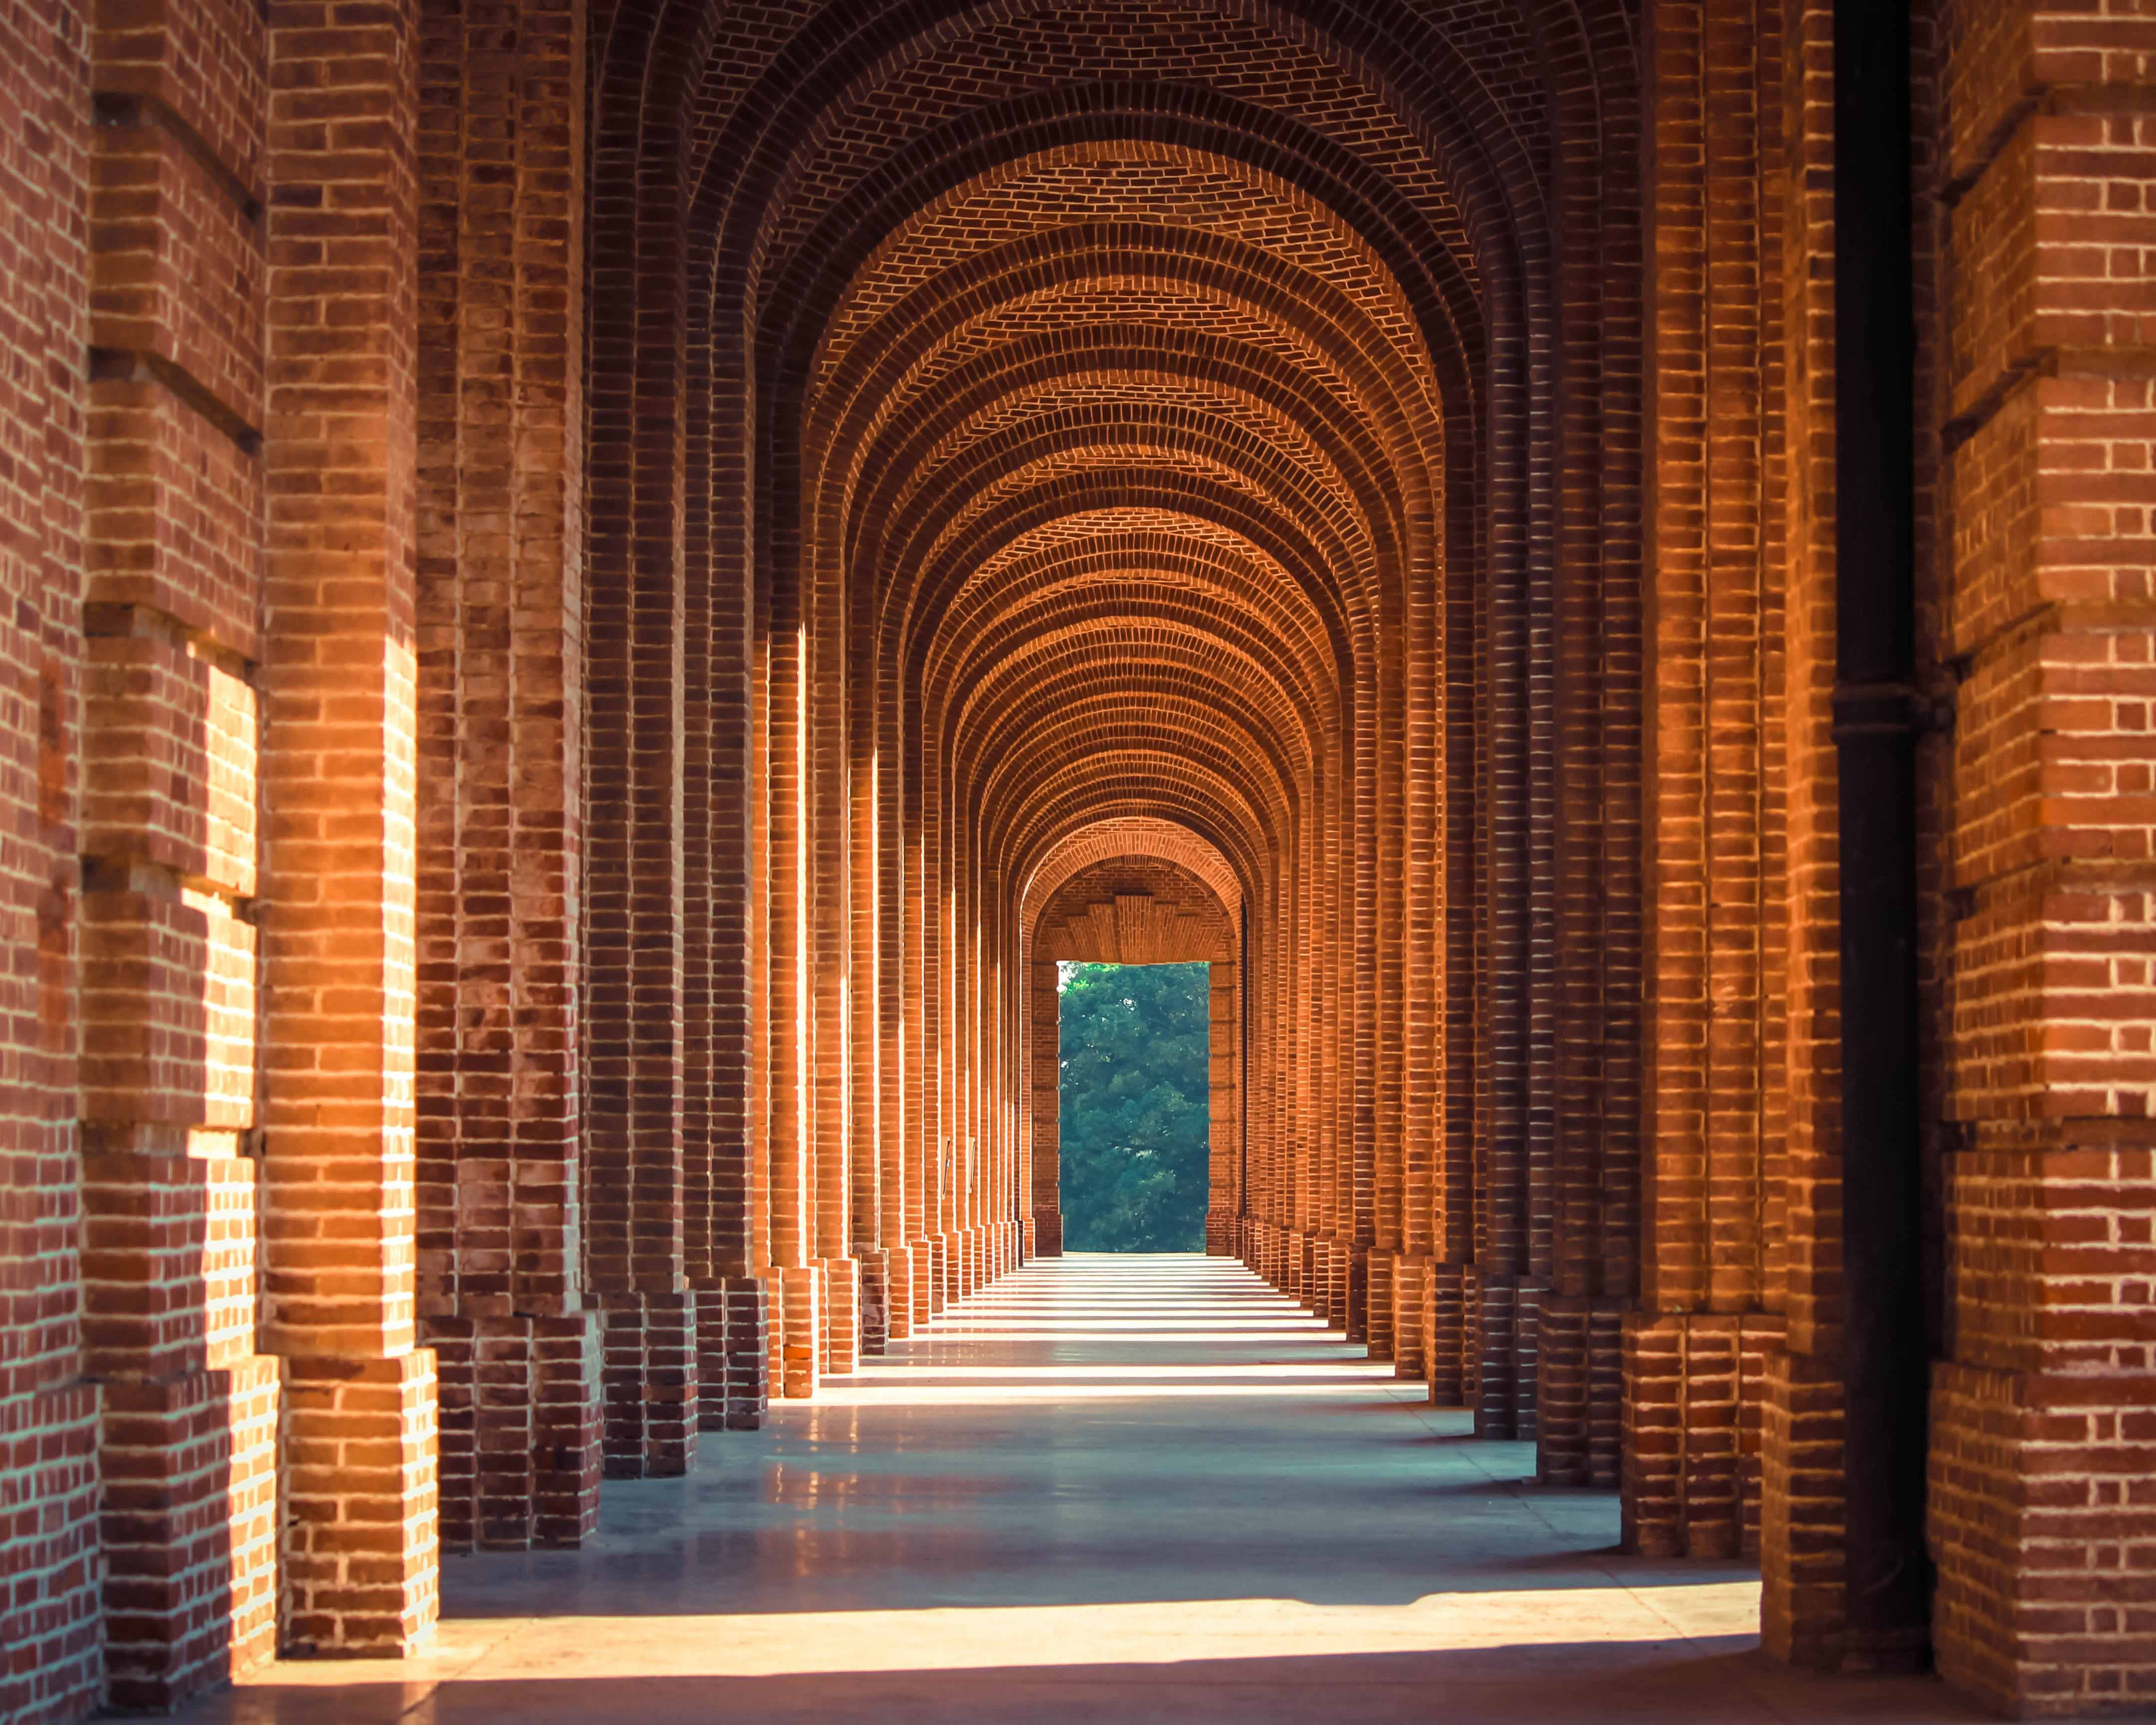 brown arch interior pathway near trees